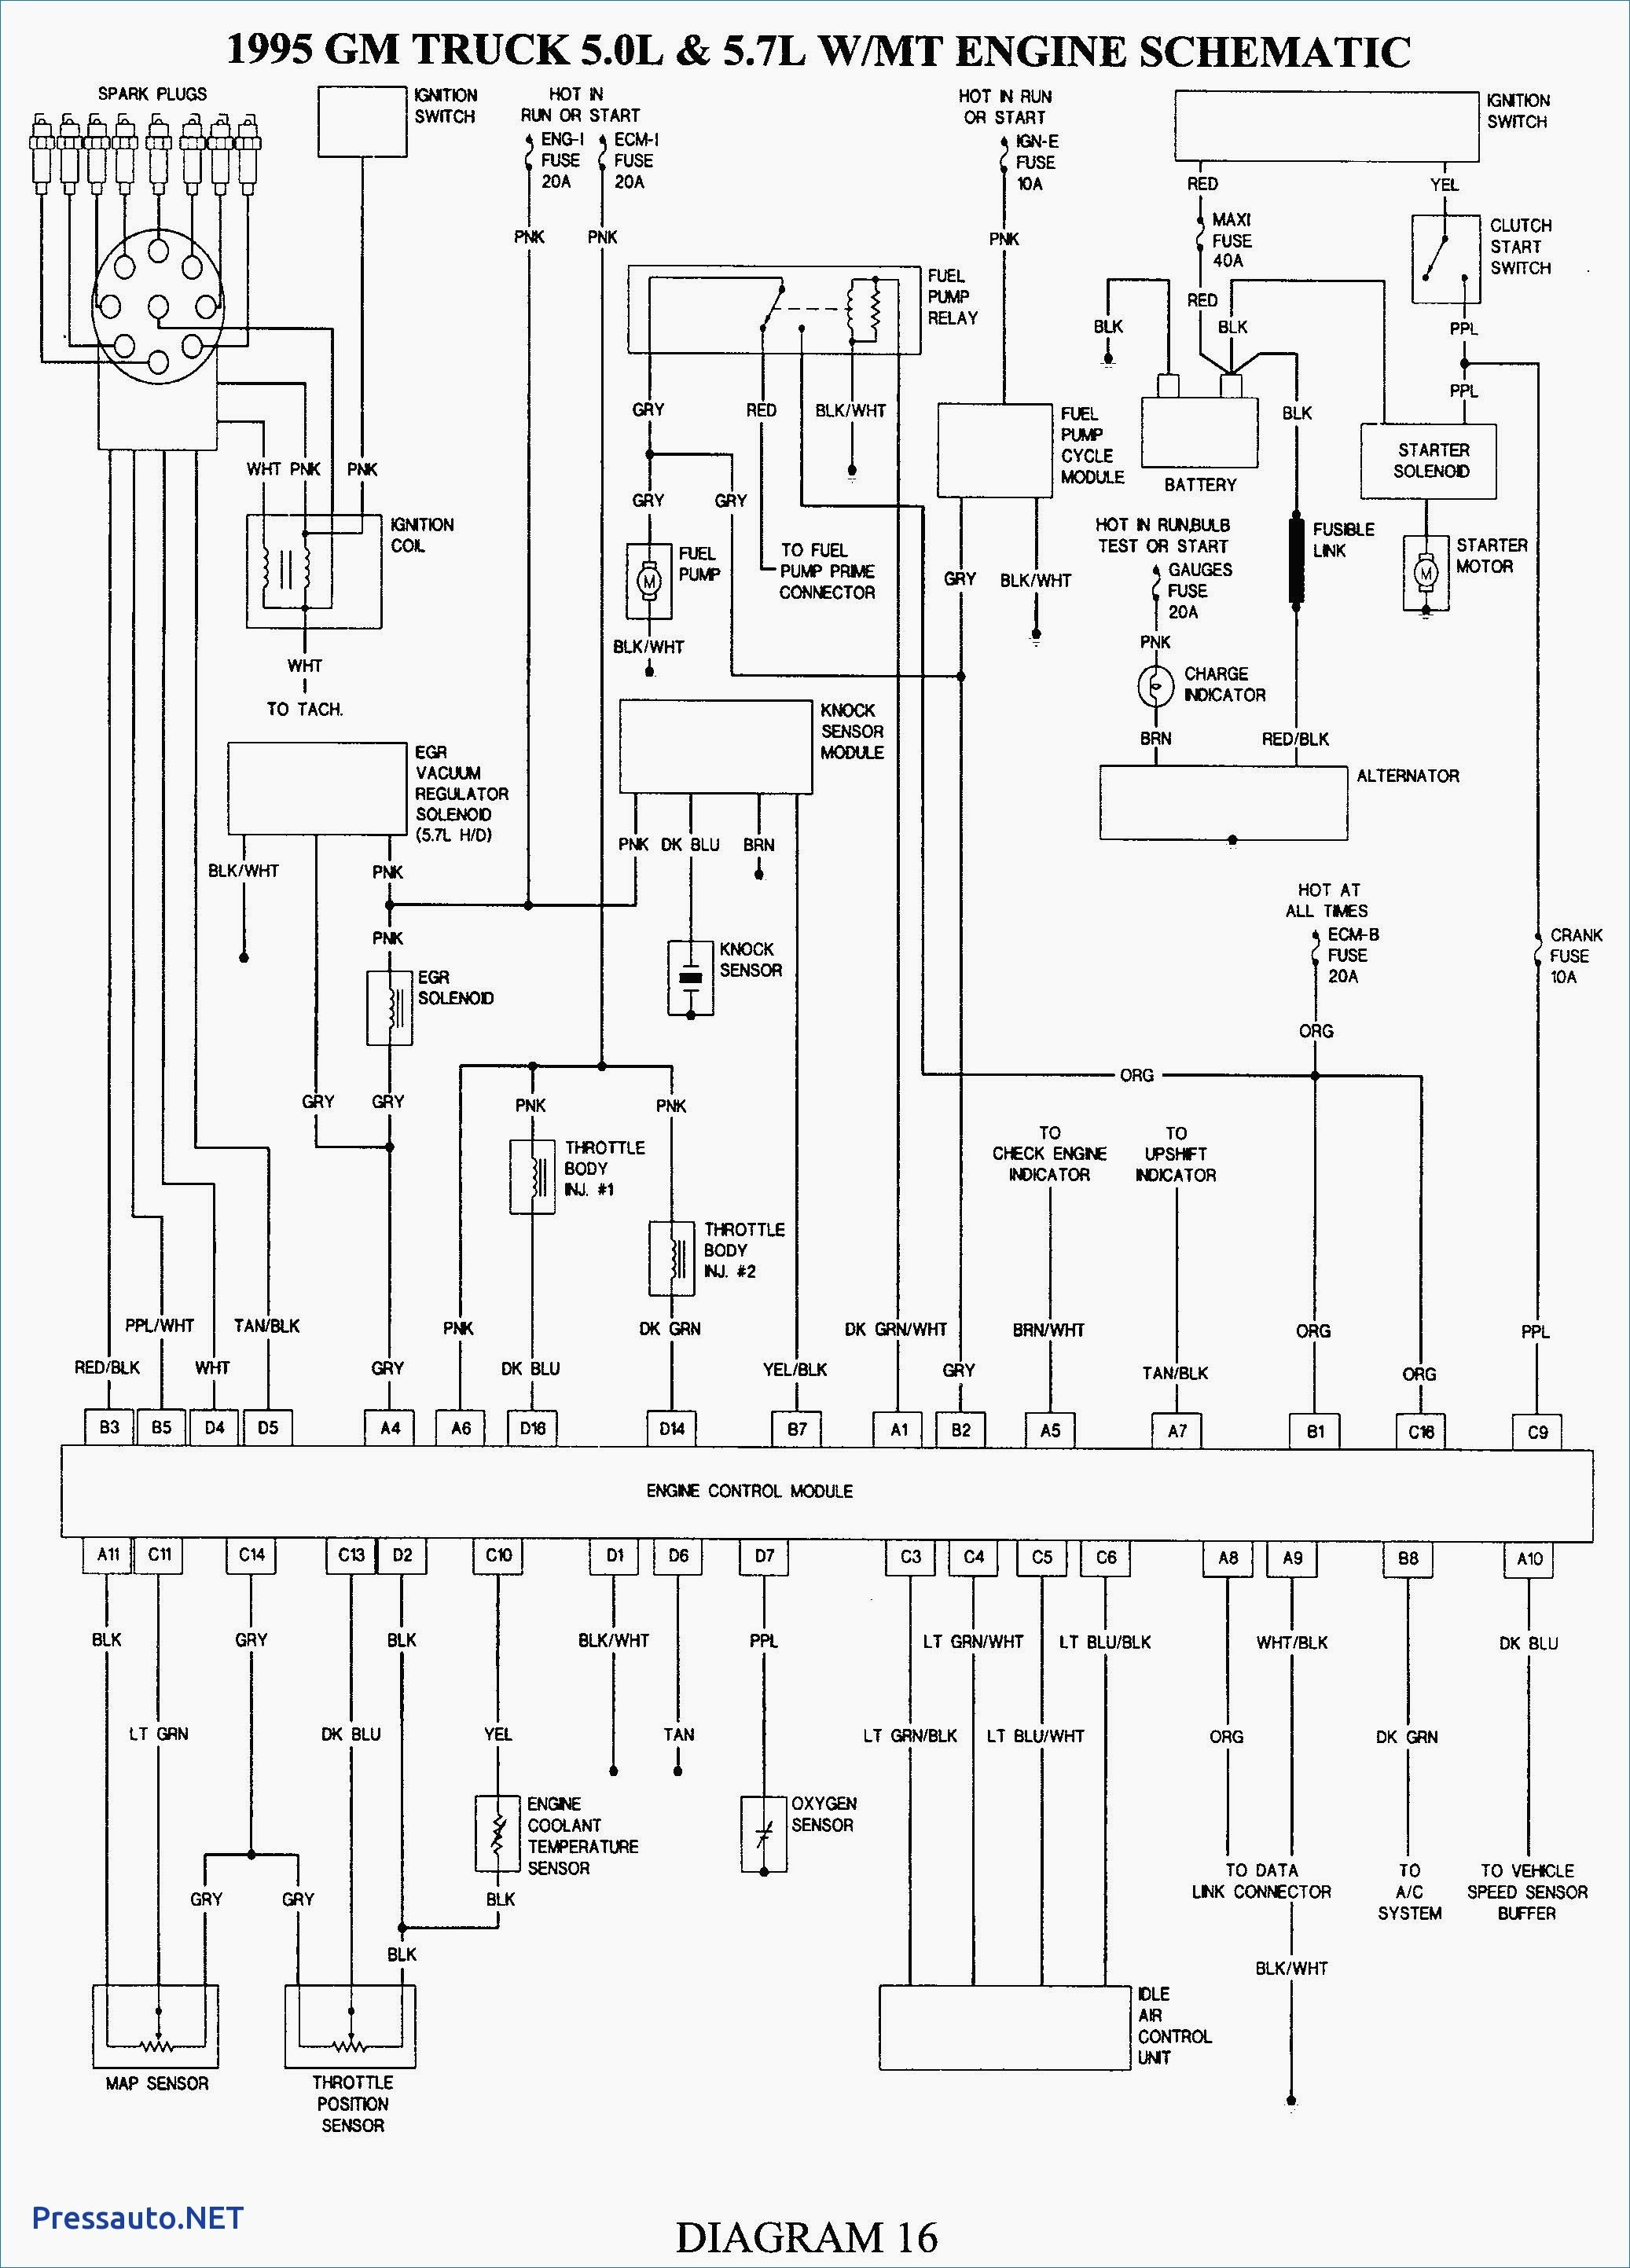 1991 Chevrolet Van Wiring Diagram Schematics Data Mack Truck Free Download Image Chevy